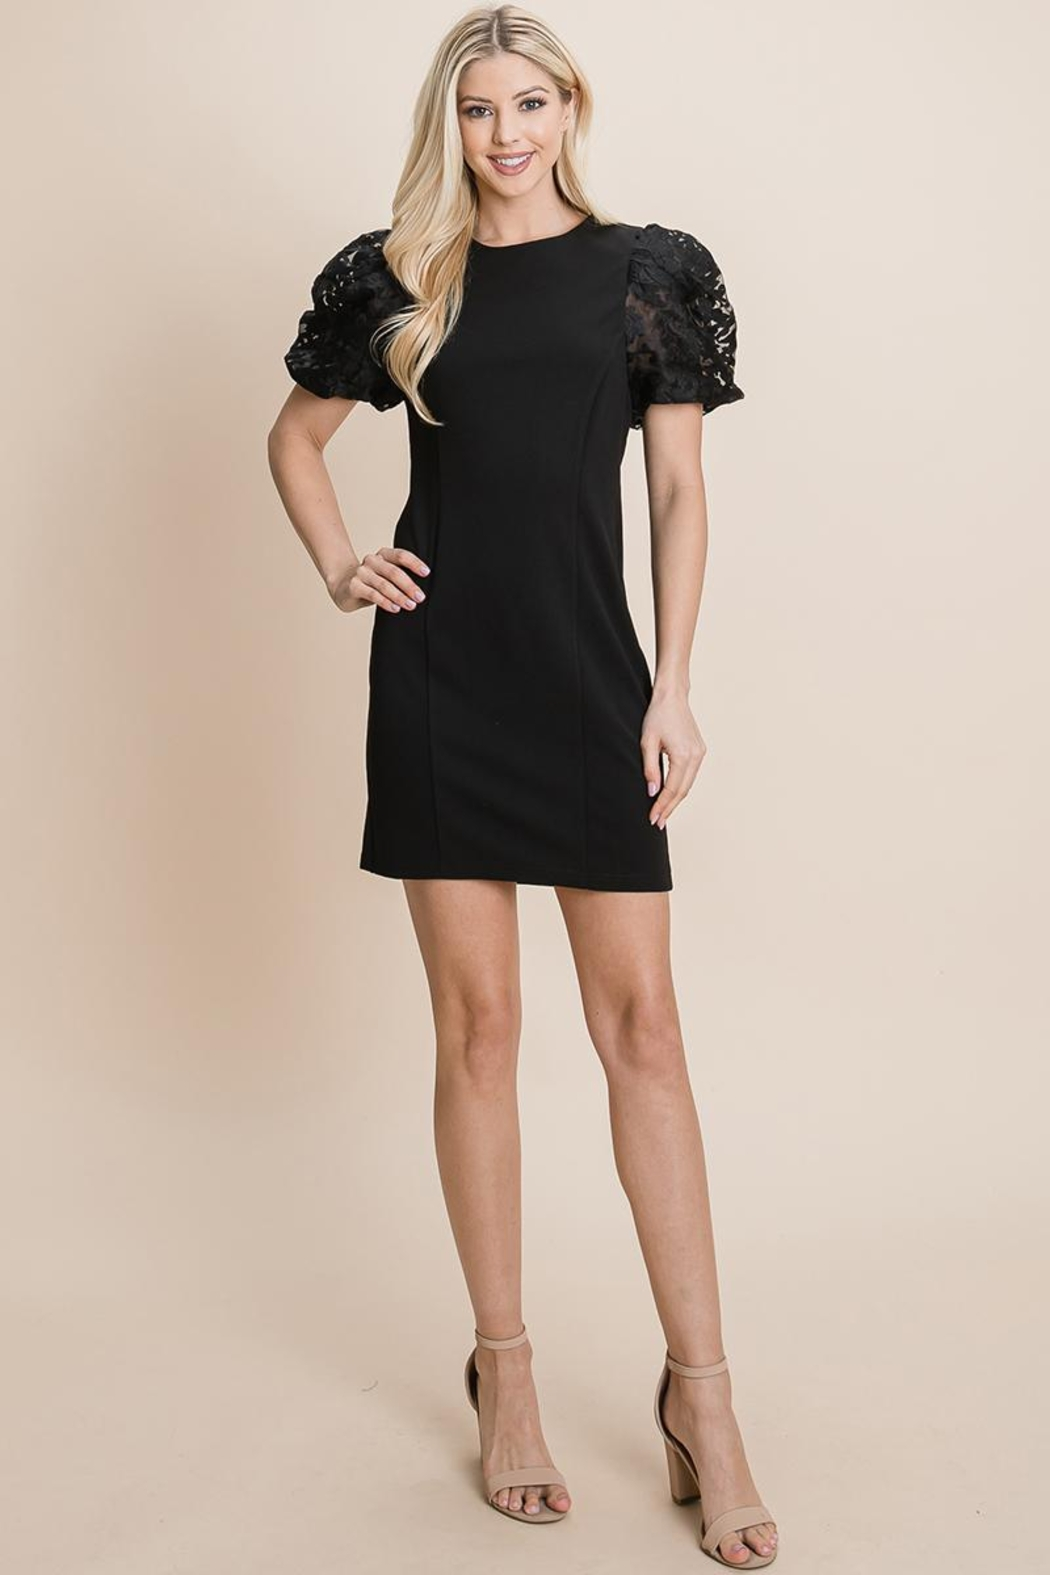 ROLYPOLY Apparel Puffed Contrast Flower Embroidered Sheath Dress - Main Image